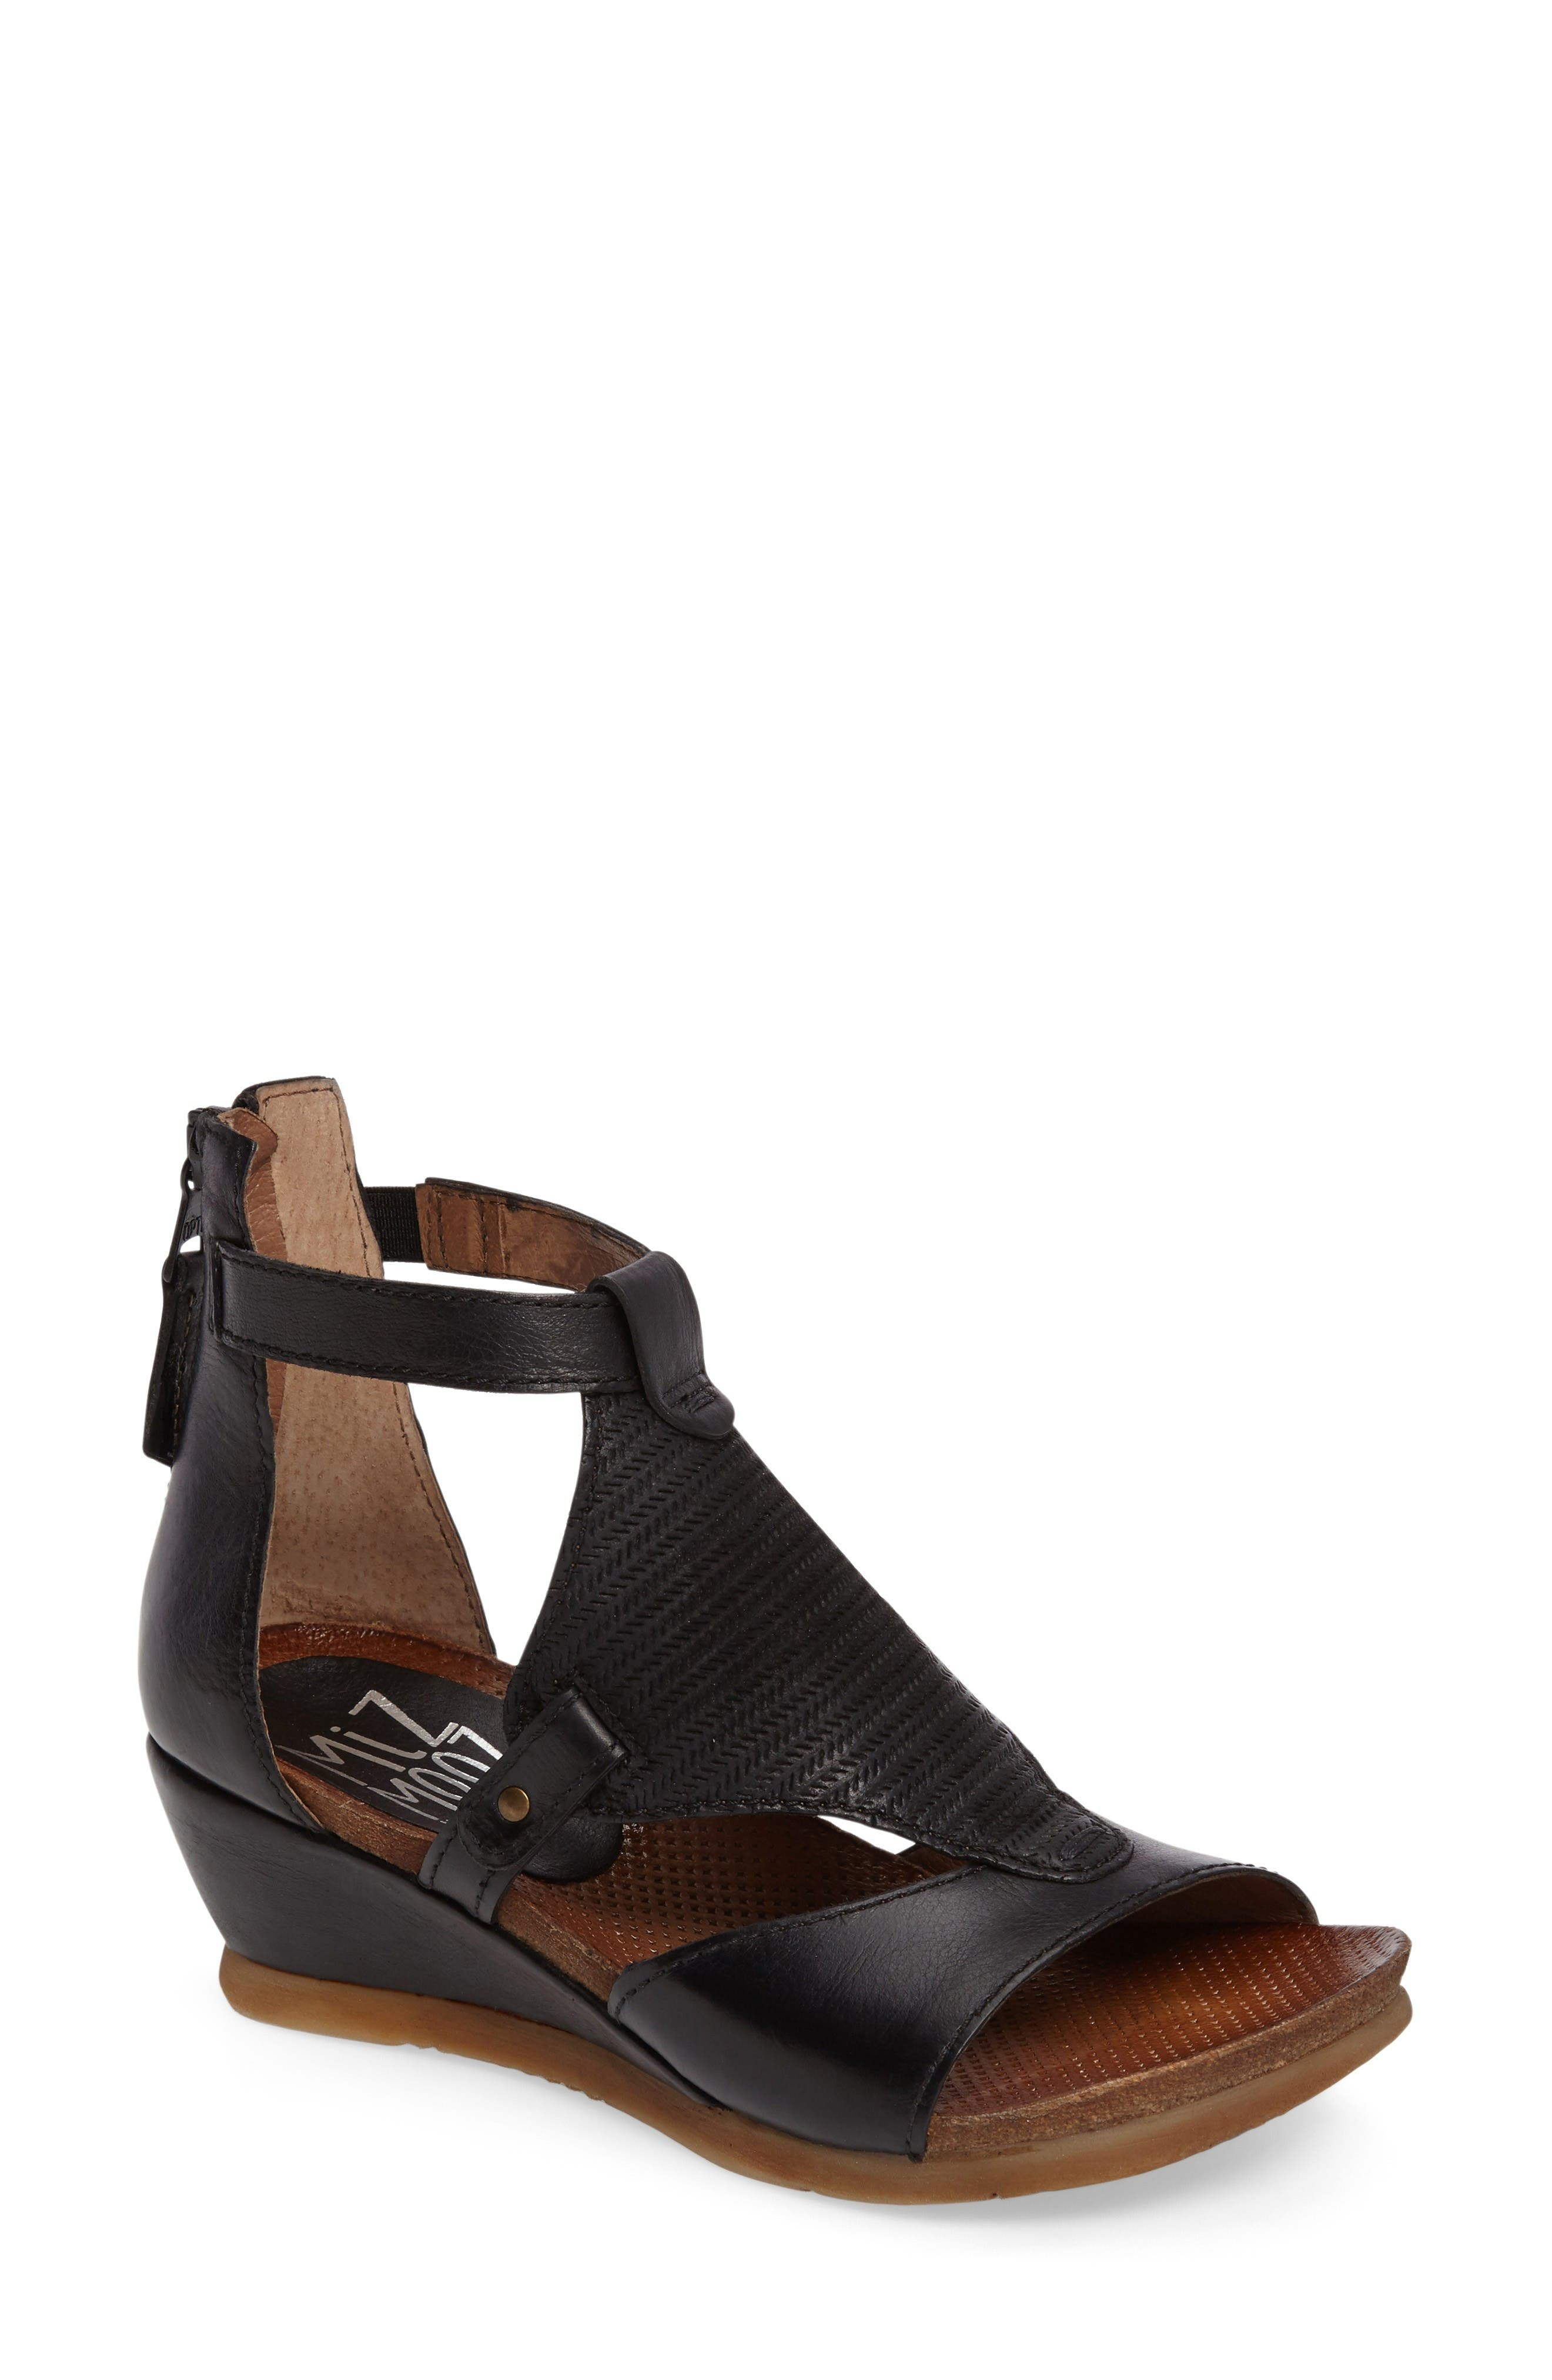 Alternate Image 1 Selected - Miz Mooz Maisie Wedge Sandal (Women)